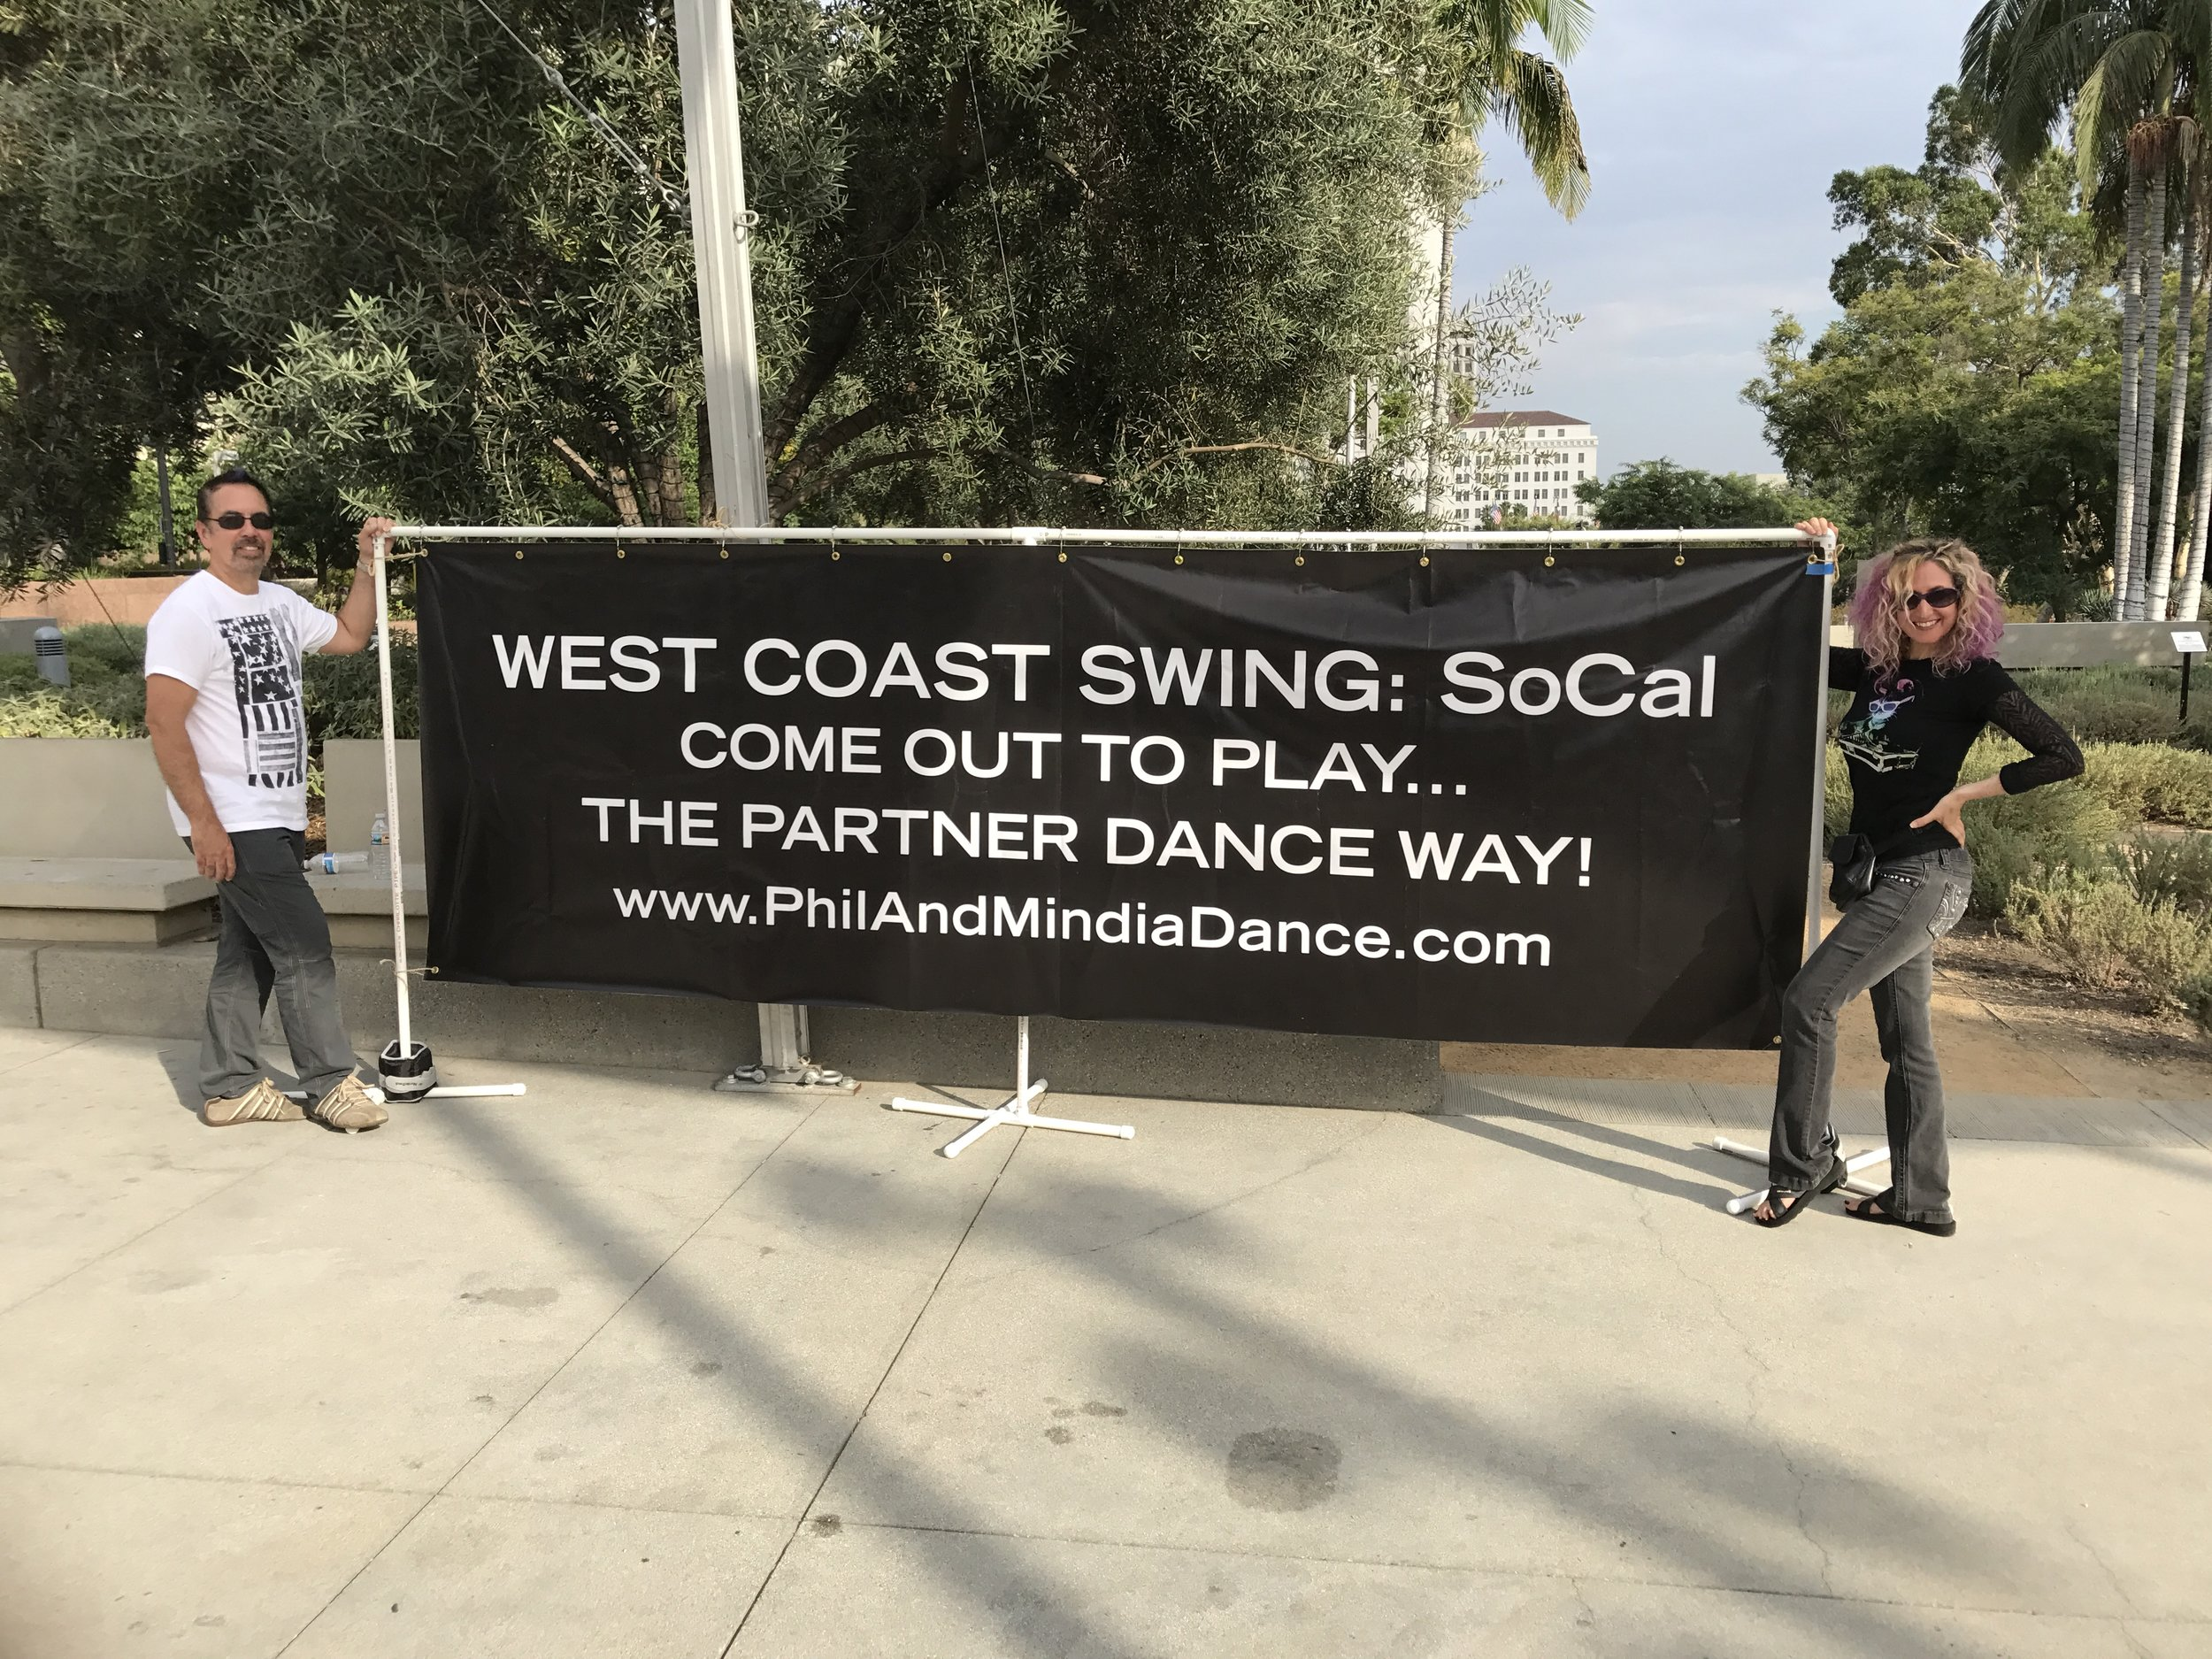 (THANKS TO STEVE STINGLEY FOR THE GREAT PIC ABOVE! IT'S FROM OUR FLASHMOB 2017 EVENT AT GRAND PARK IN LOS ANGELES.)